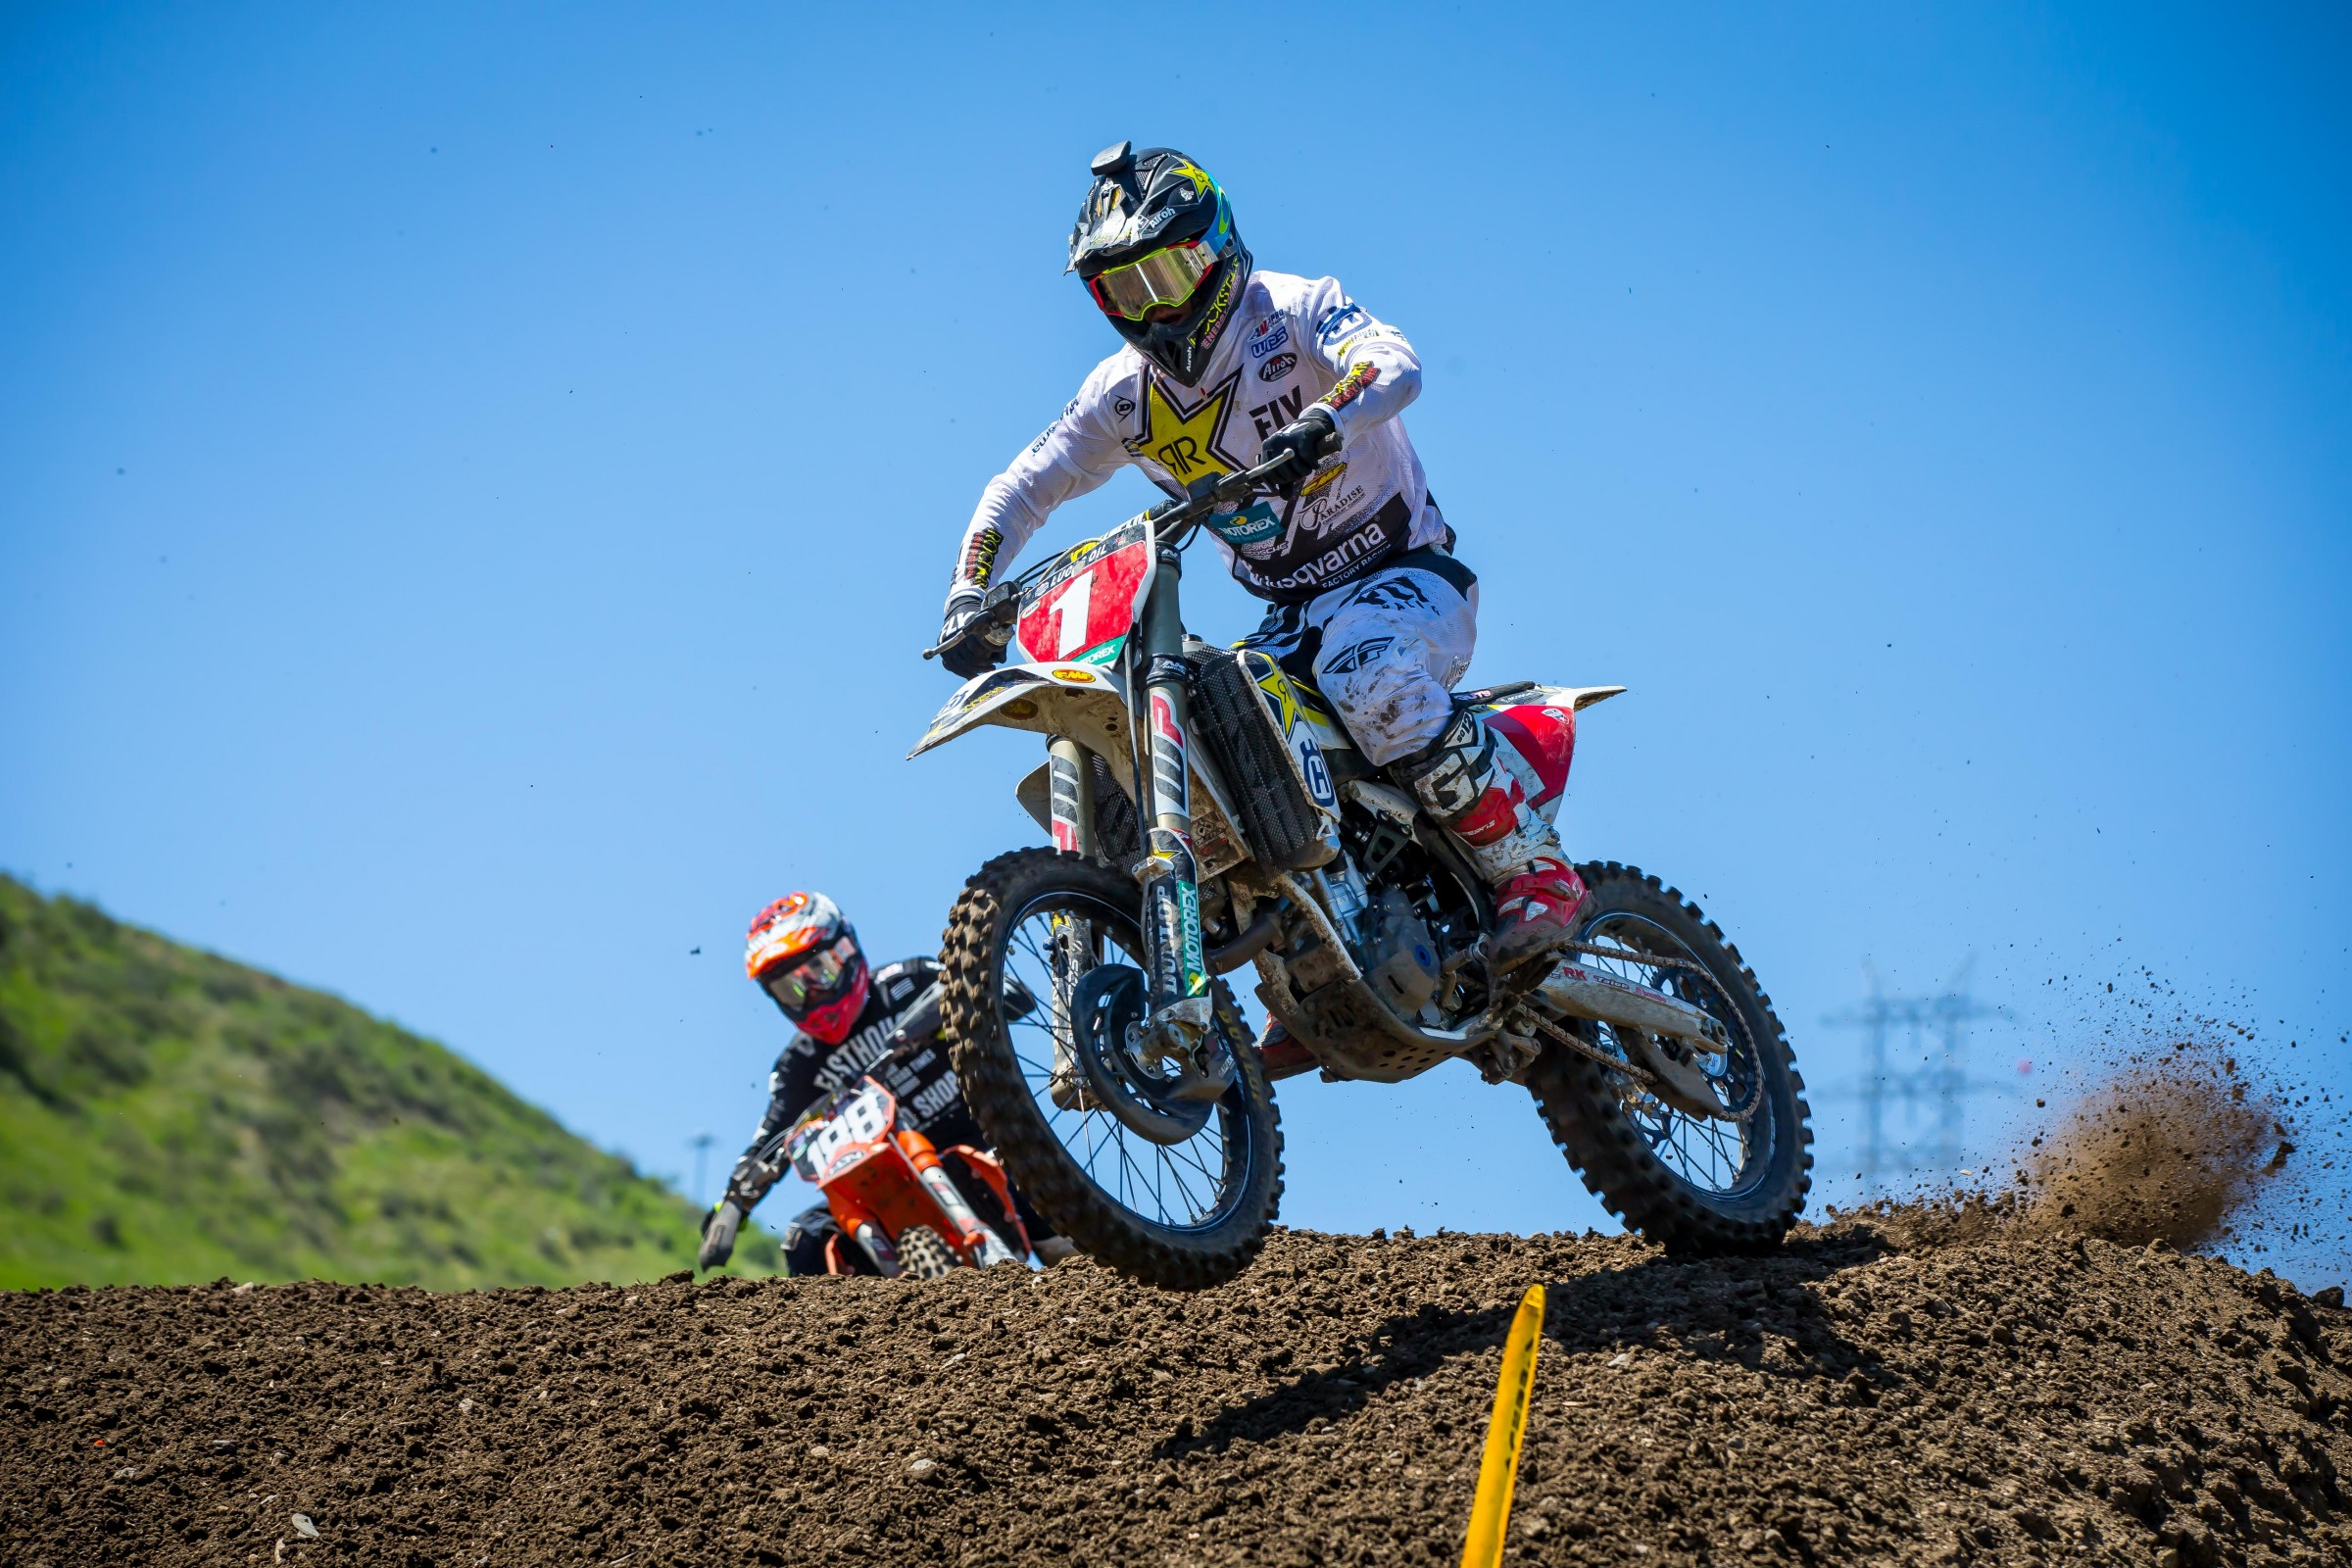 Osborne placed 20th in the second moto after sustaining a shoulder injury.